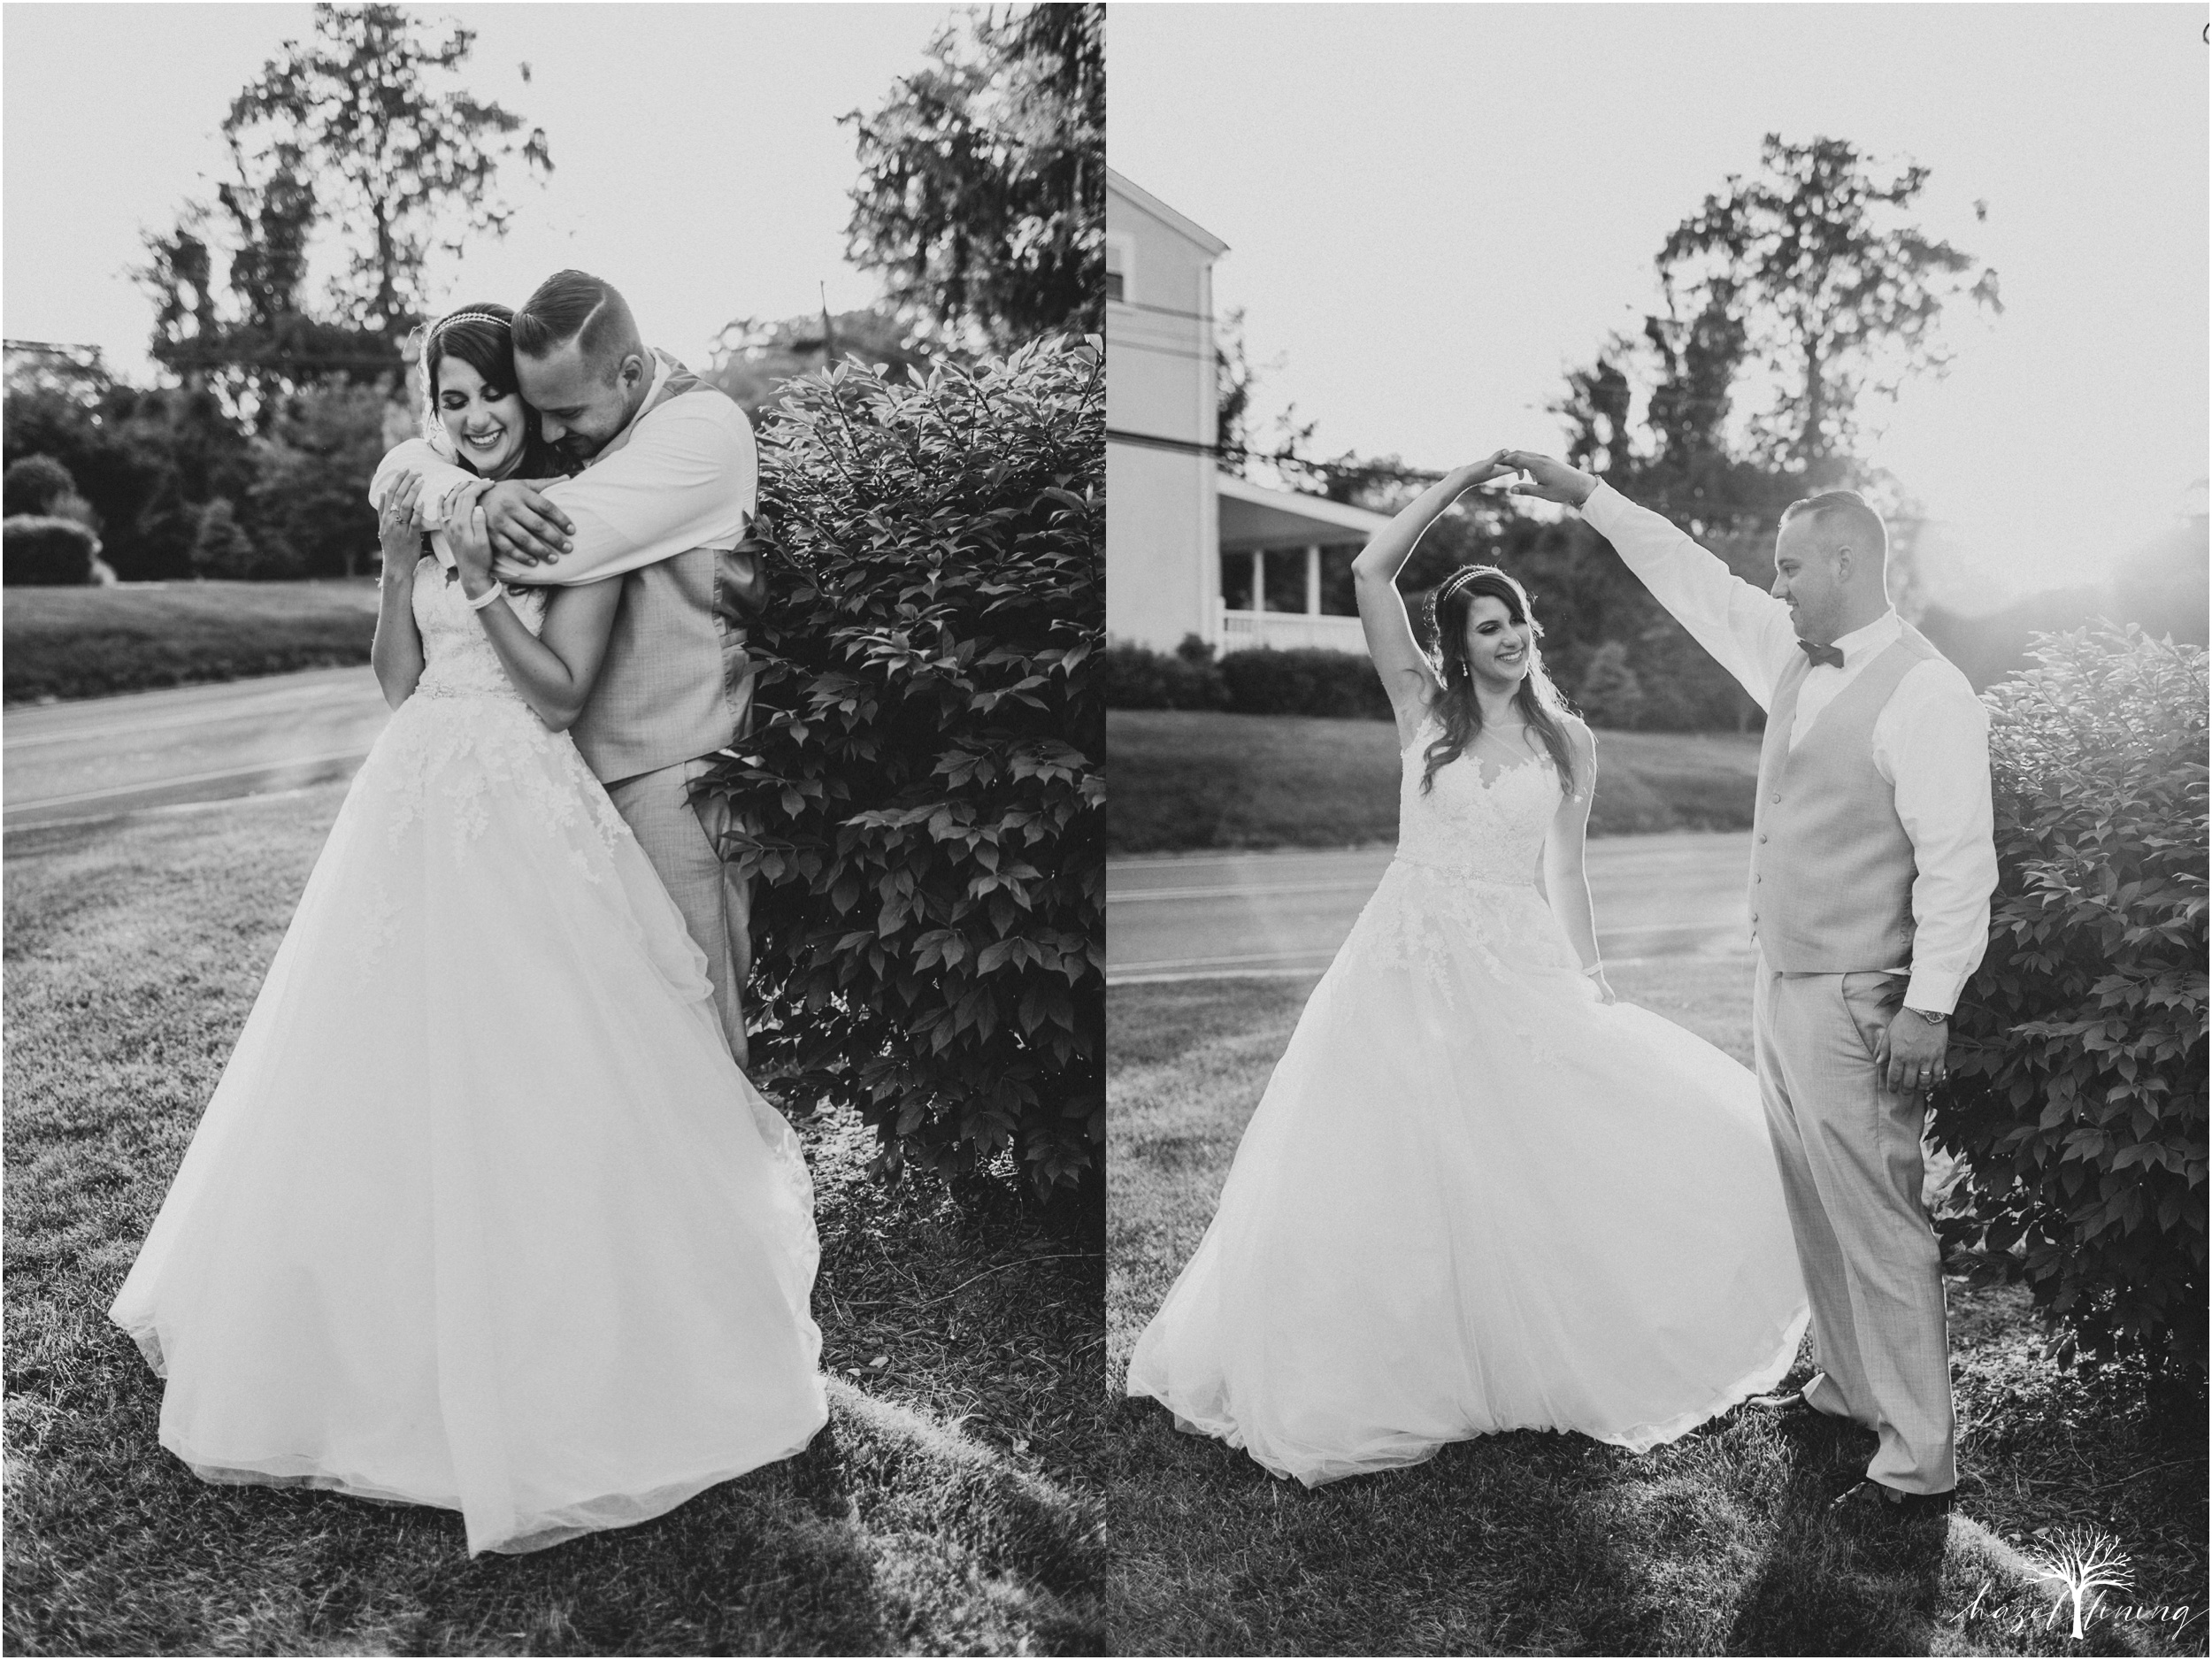 cassie-depinto-tyler-bodder-playwicki-farm-buck-hotel-featserville-trevose-pennsylvania-summer-outdoor-wedding-hazel-lining-travel-wedding-elopement-photography_0315.jpg